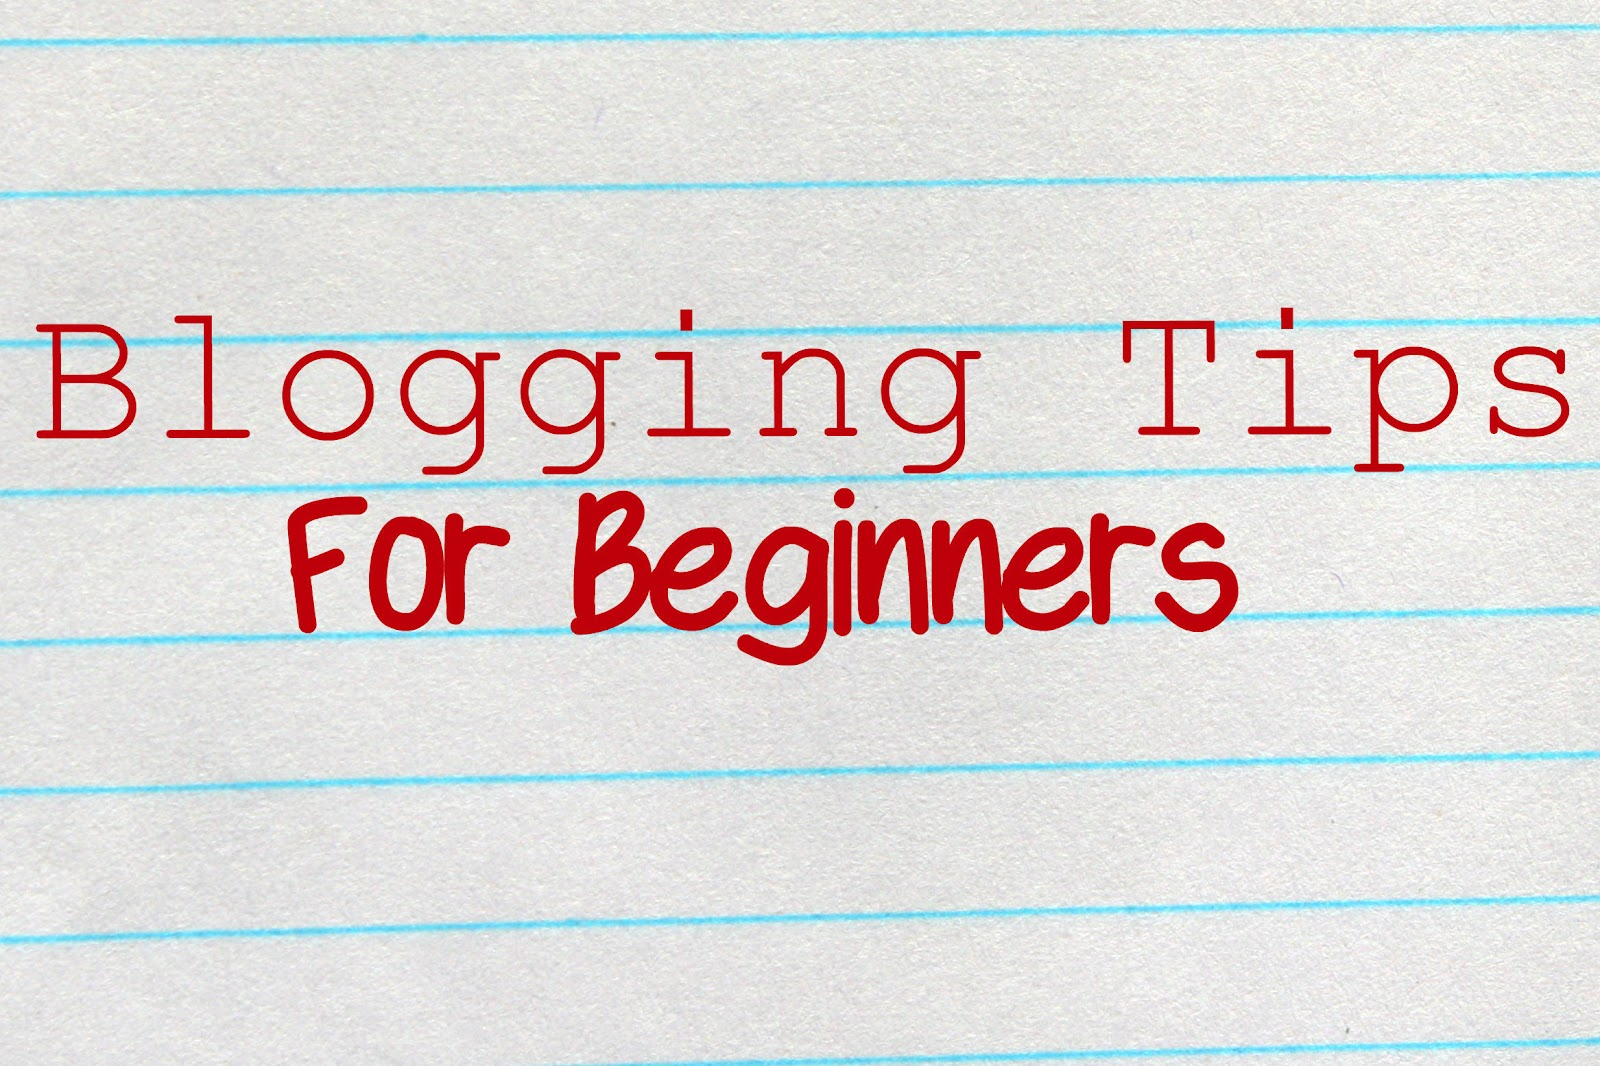 Blogging-Tips-for-Beginners1